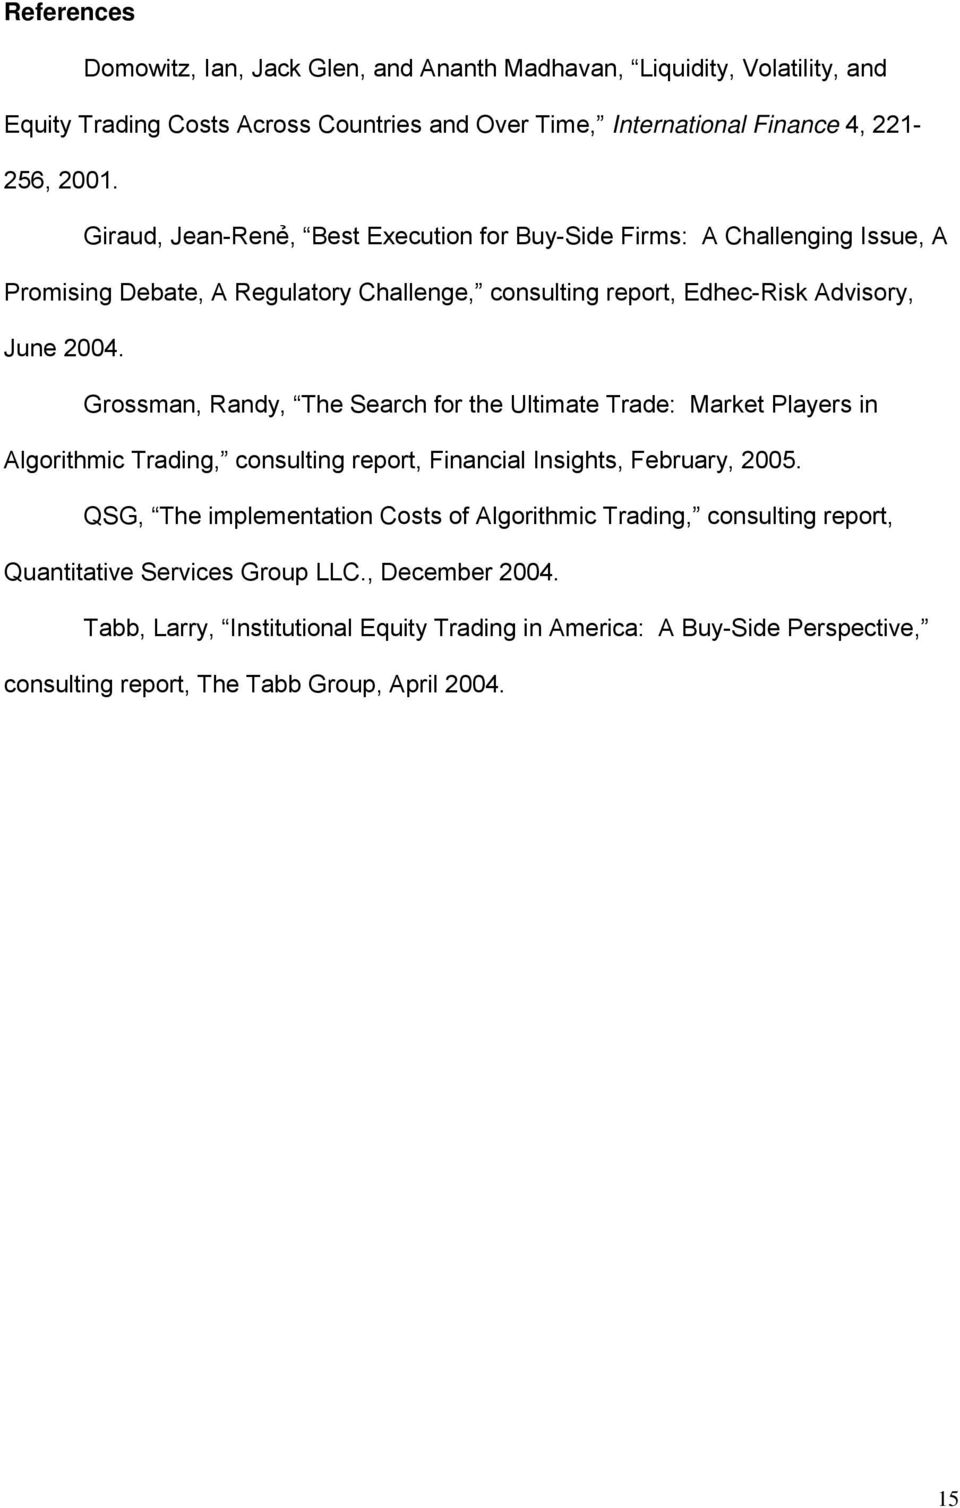 Grossman, Randy, The Search for the Ultimate Trade: Market Players in Algorithmic Trading, consulting report, Financial Insights, February, 2005.